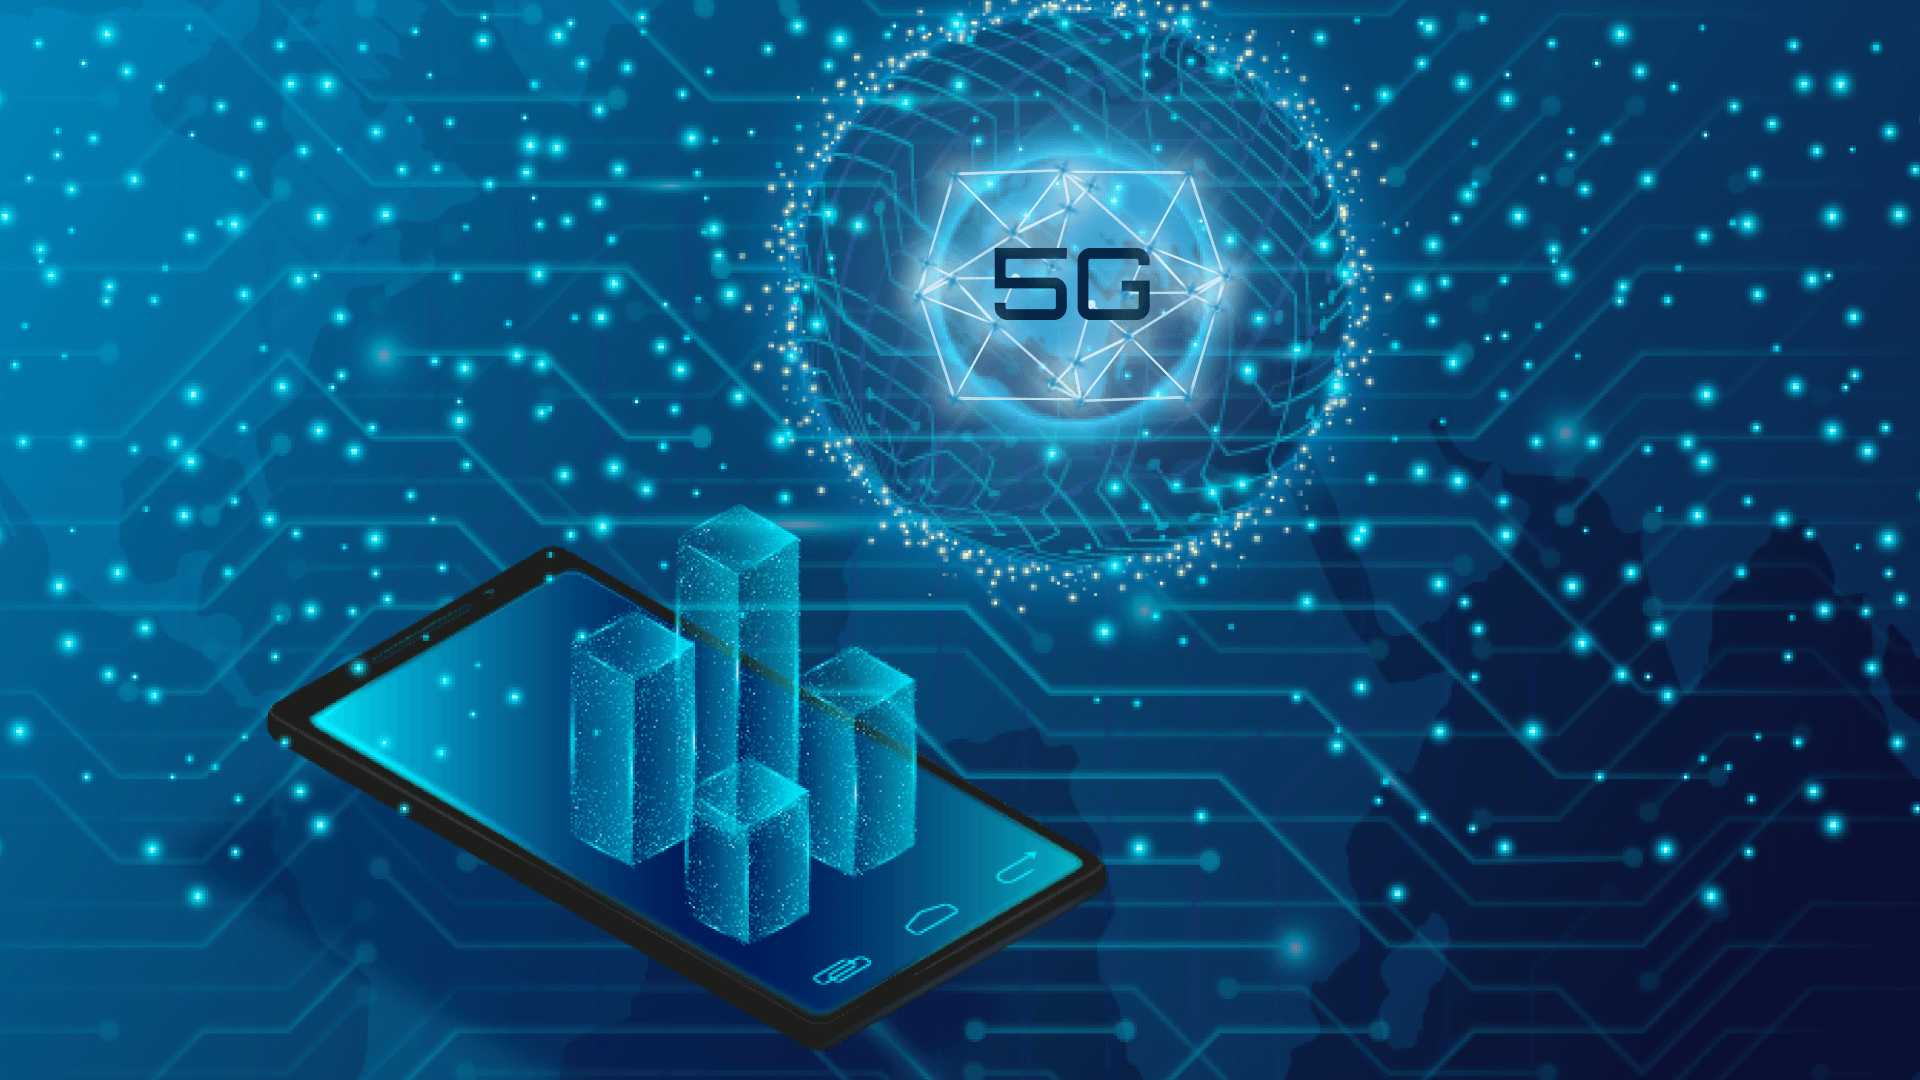 Ways to Prepare Your Mobile App for the 5G